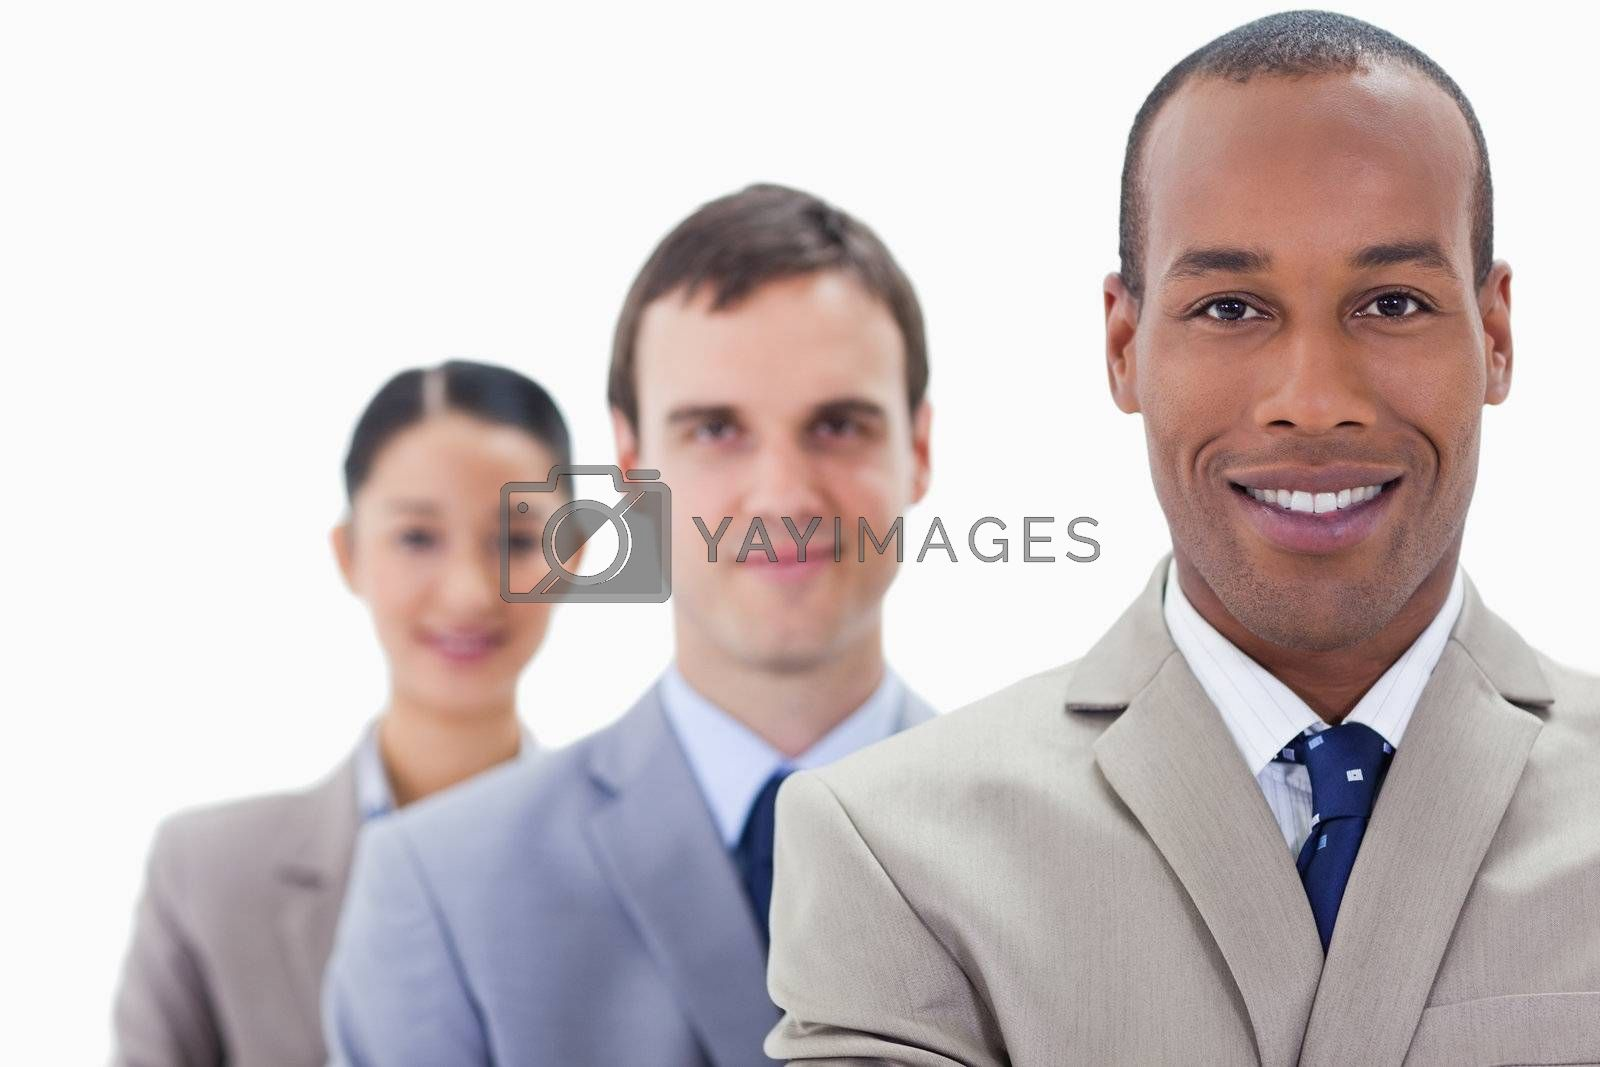 Big close-up of people dressed in suits smiling in a single line with focus on the first man